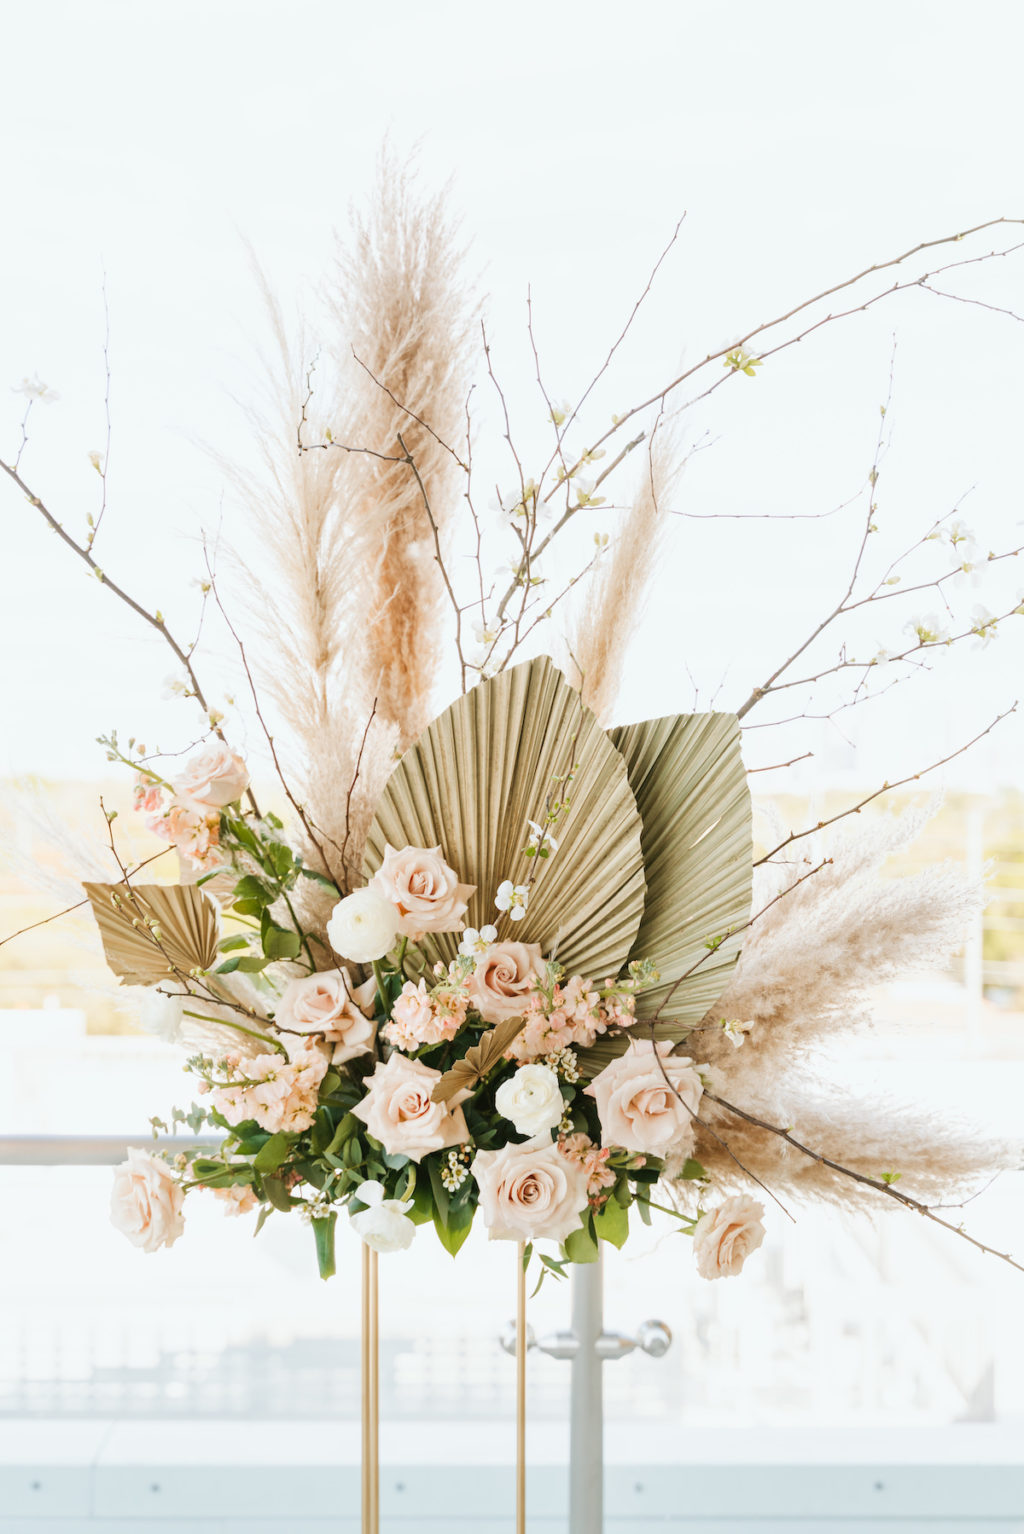 Organic Boho Modern White and Brown Wedding Ceremony Flowers with Peach Roses, Gold Leaves, and Feathers | Tampa Bay Wedding Florist Monarch Events